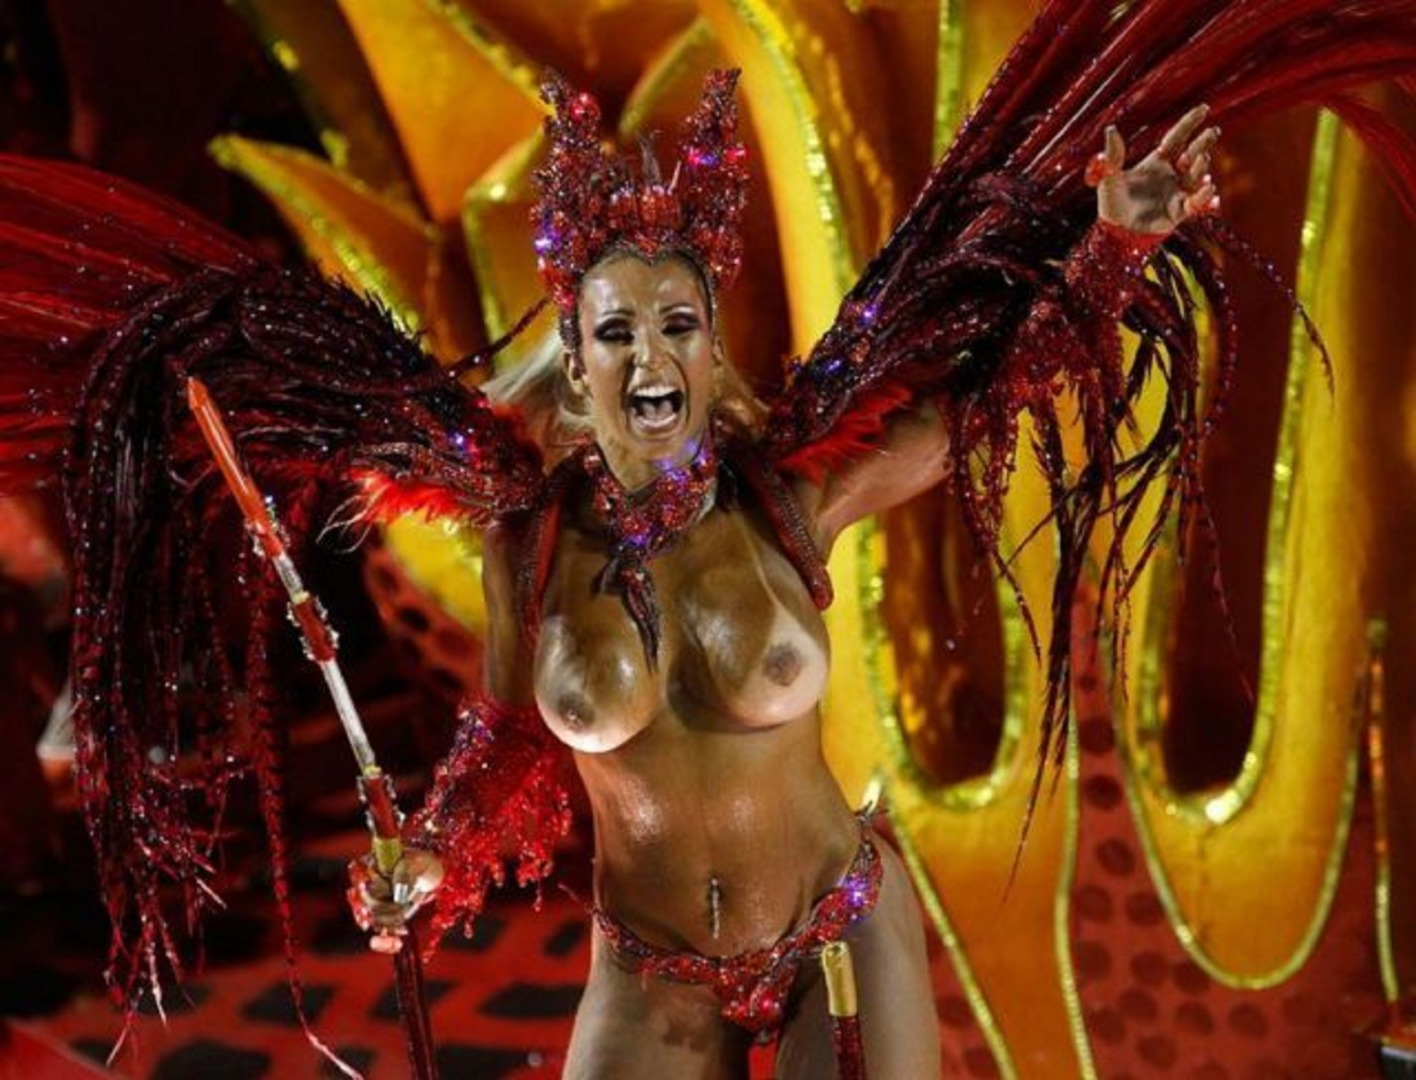 massive anal squirting insertion free sex videos watch #RioCarnival2012 - #TheProdigy - #NoTourists - Light Up The Sky